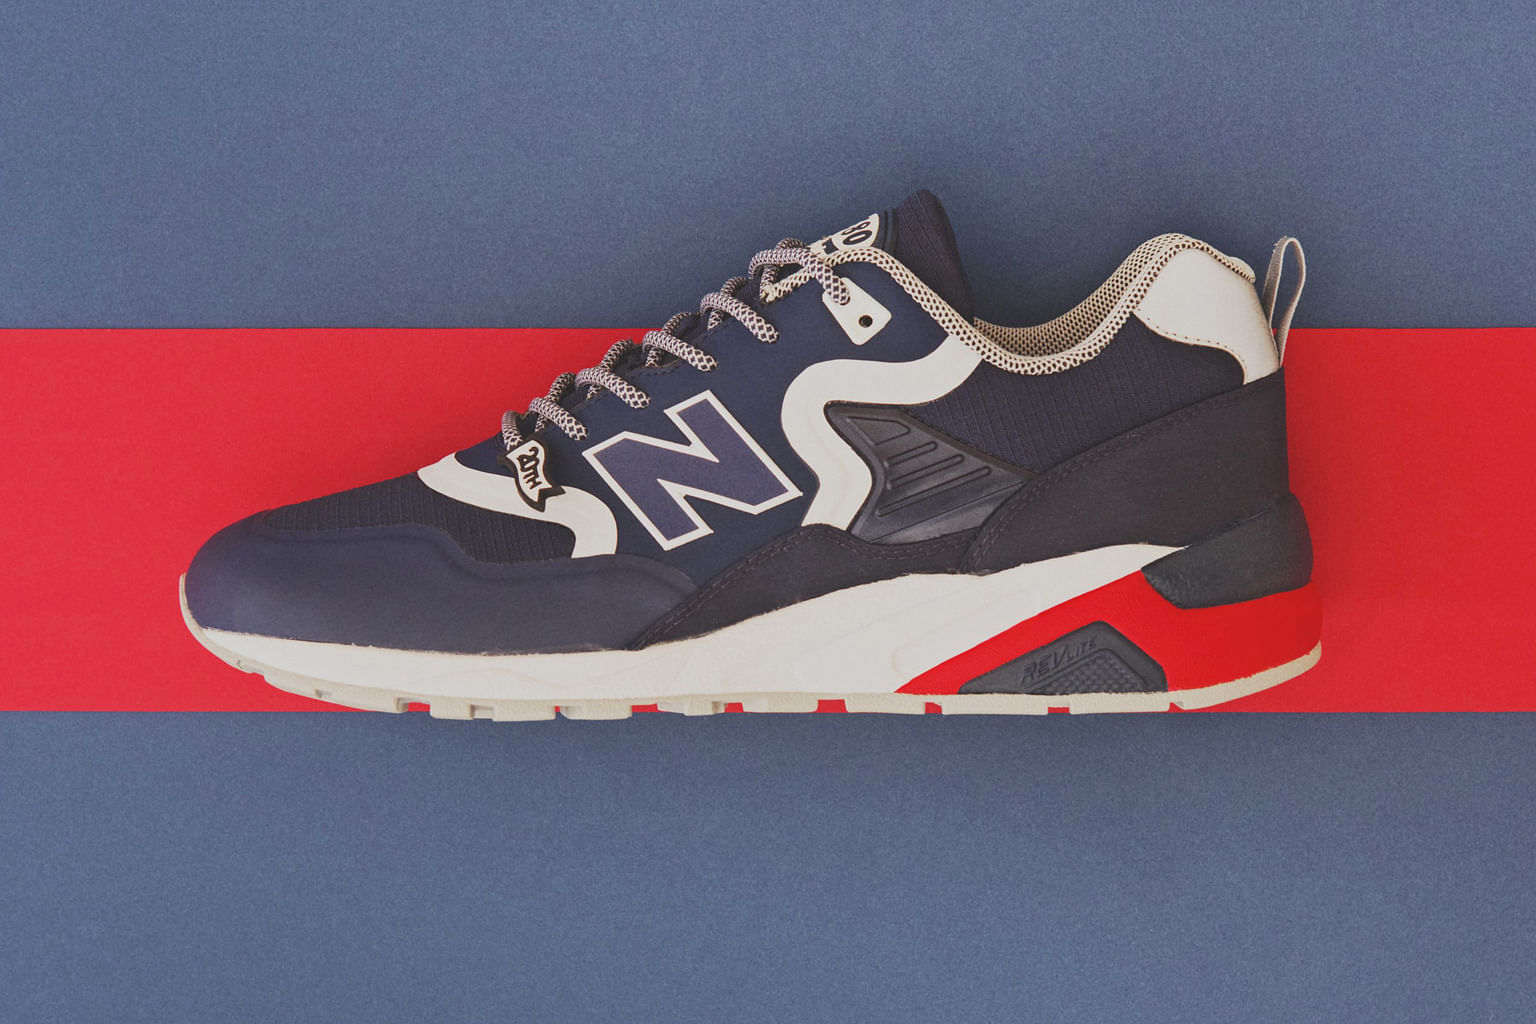 designer fashion 60f55 33916 Style News: New Balance 580 20th Anniversary pop-up gallery ...